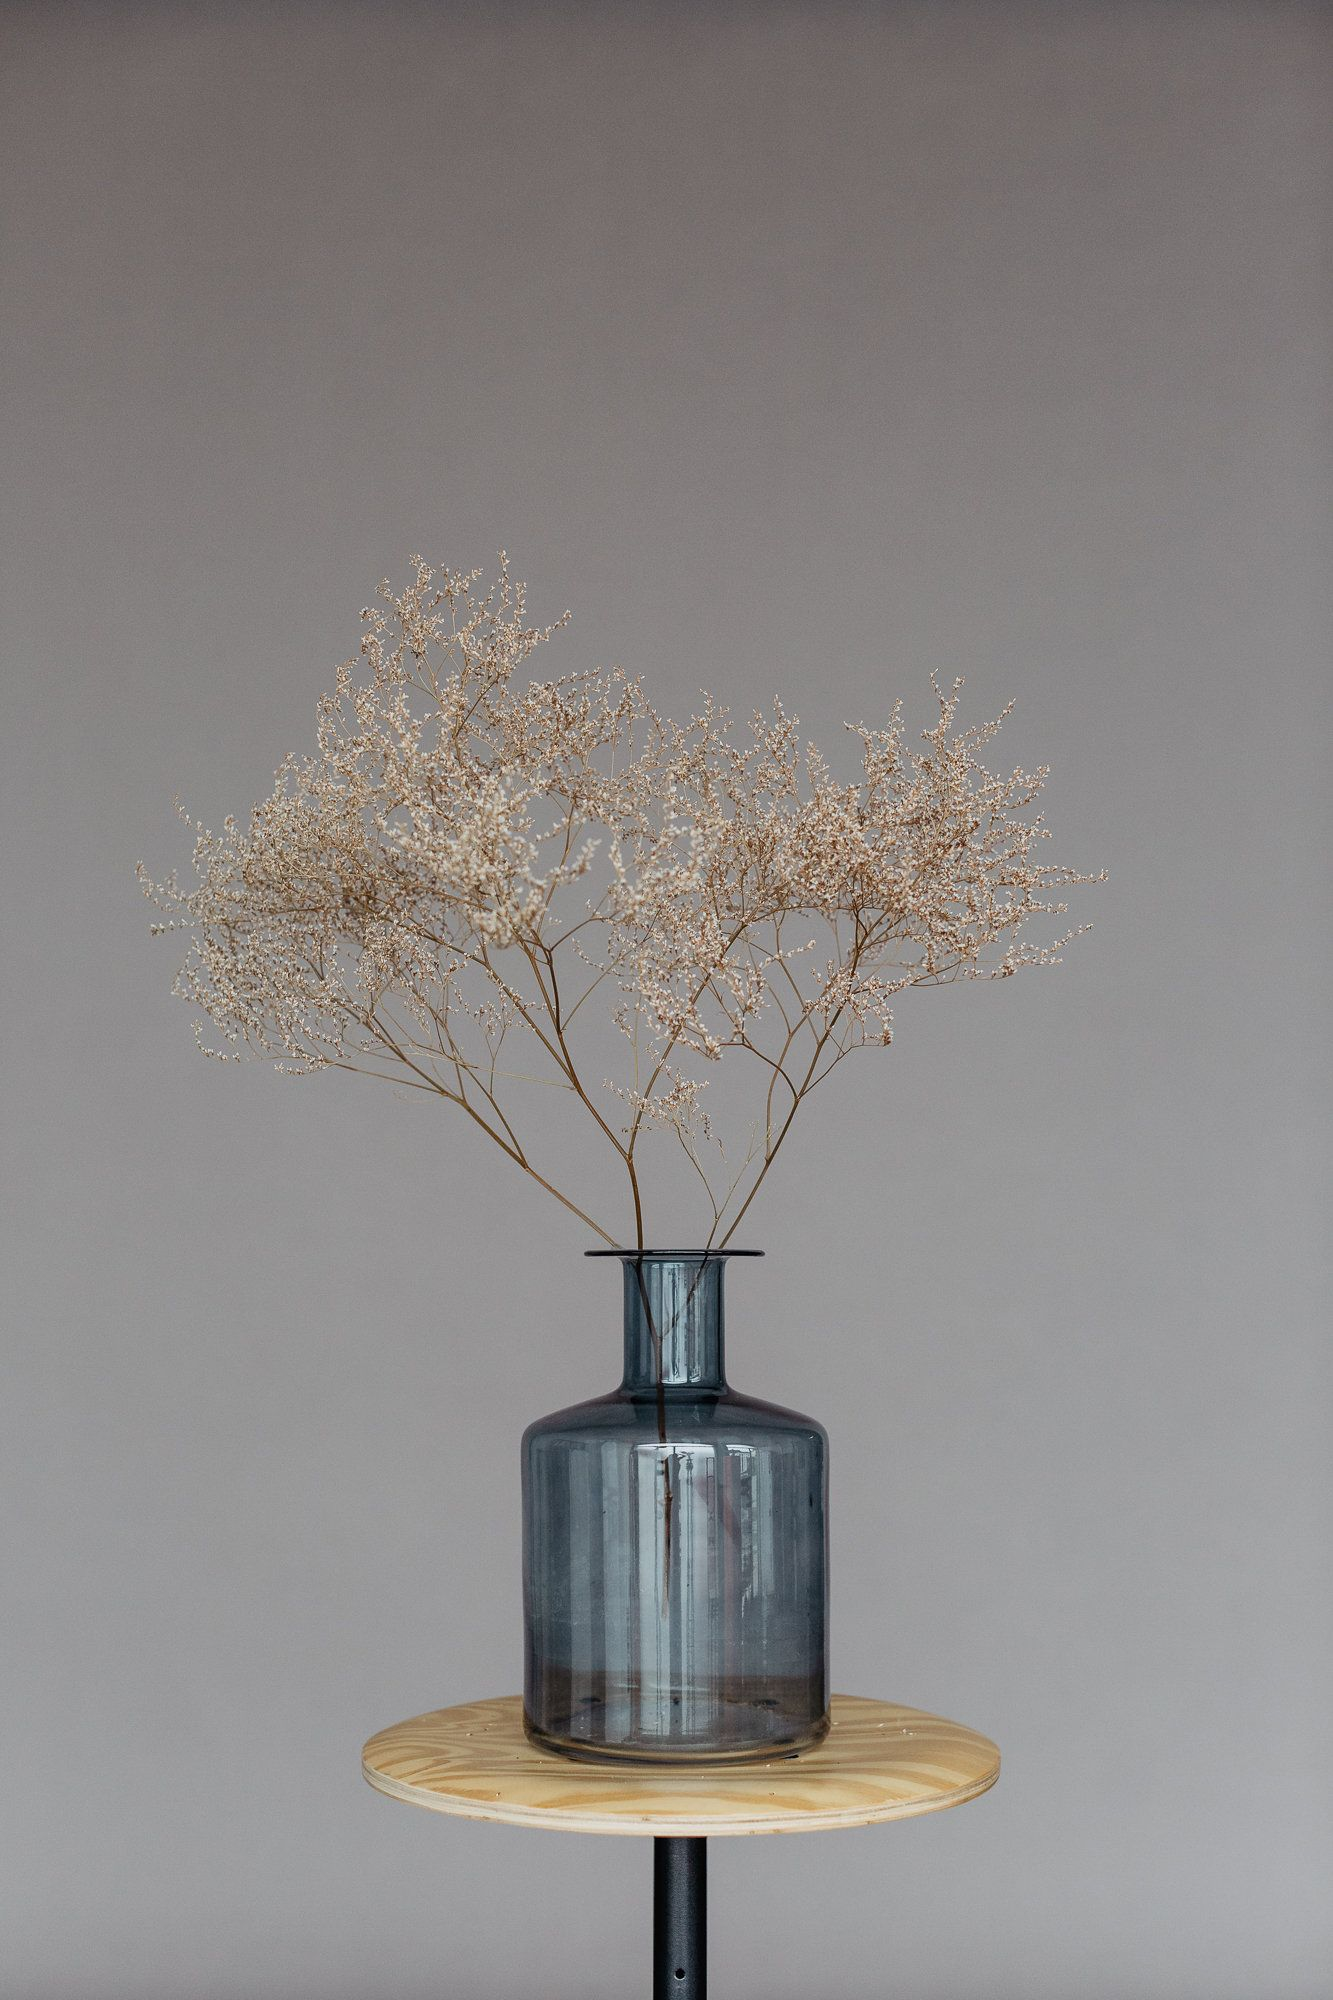 Dried Veiled Floral Decoration For Interior Design Christmas Decoration Floral Decor Inspiration Christmas Interior Decor Decor